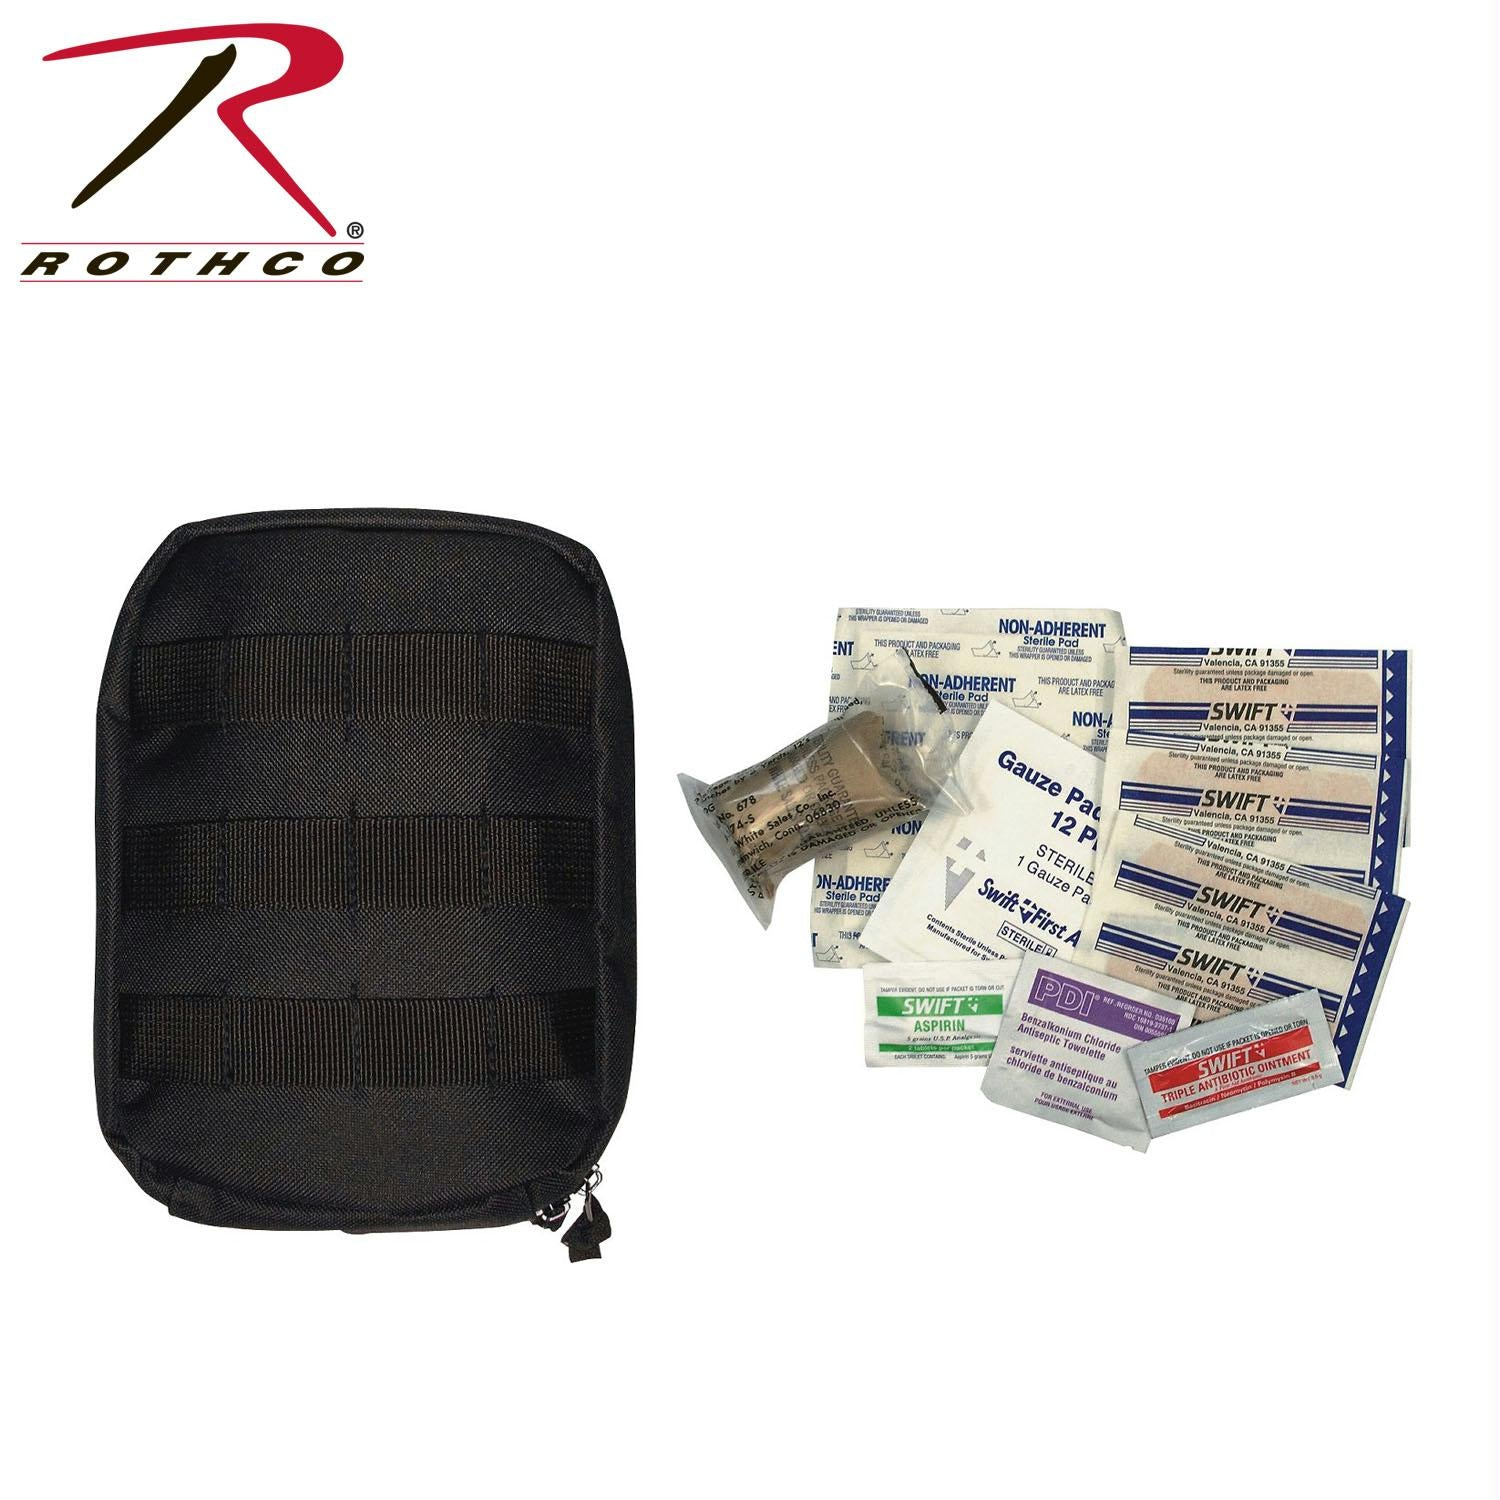 Rothco MOLLE Tactical First Aid Kit - Black